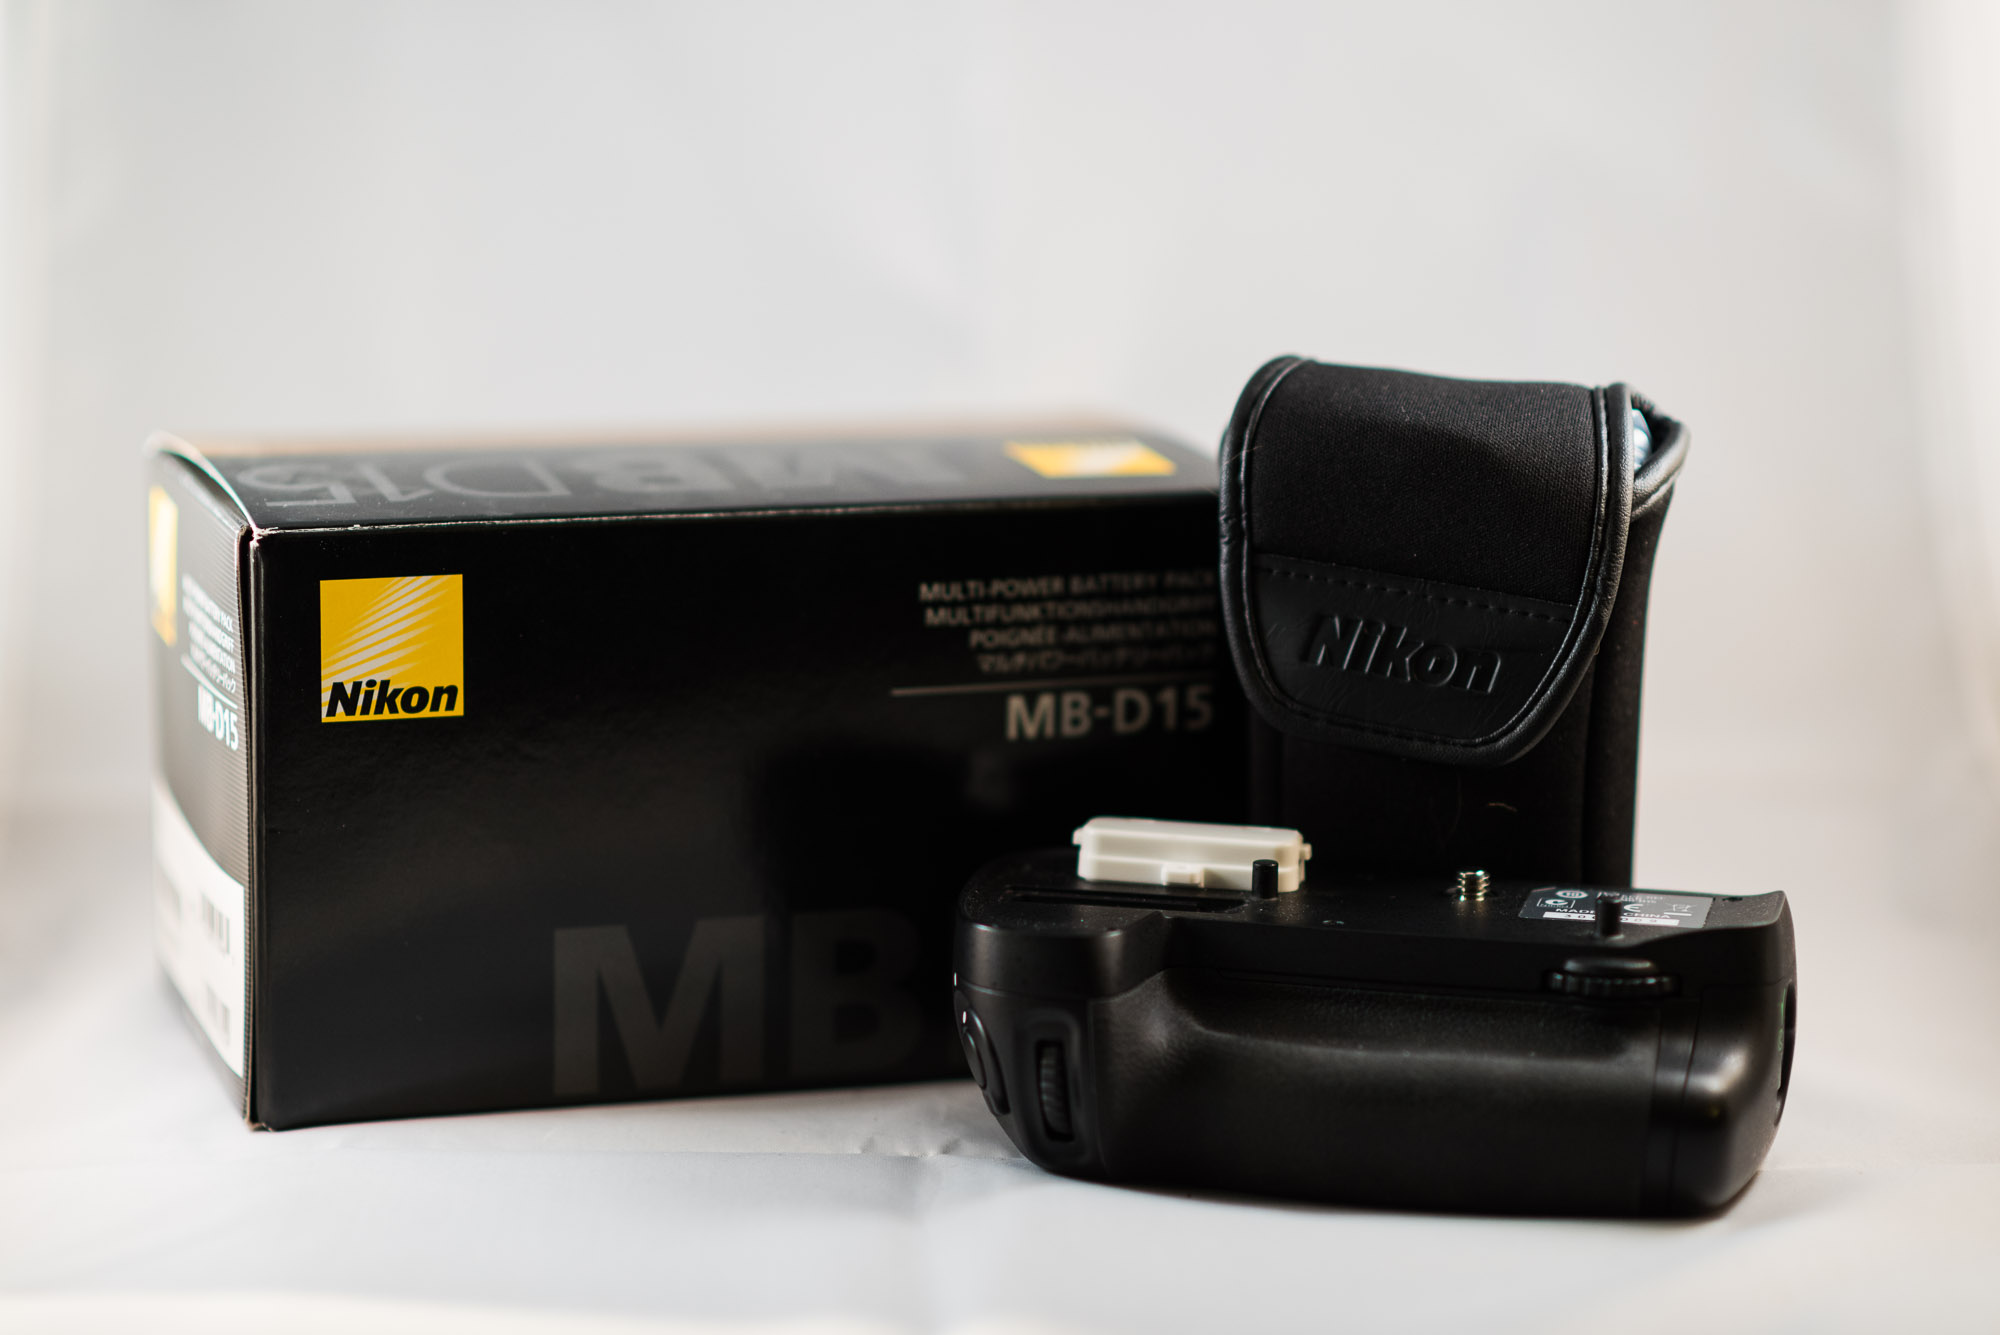 Nikon OEM battery grip for the D7100/7200 body. Includes both the AA and  EN-EL15 battery trays, plus the storage pouch. In box with original manuals.